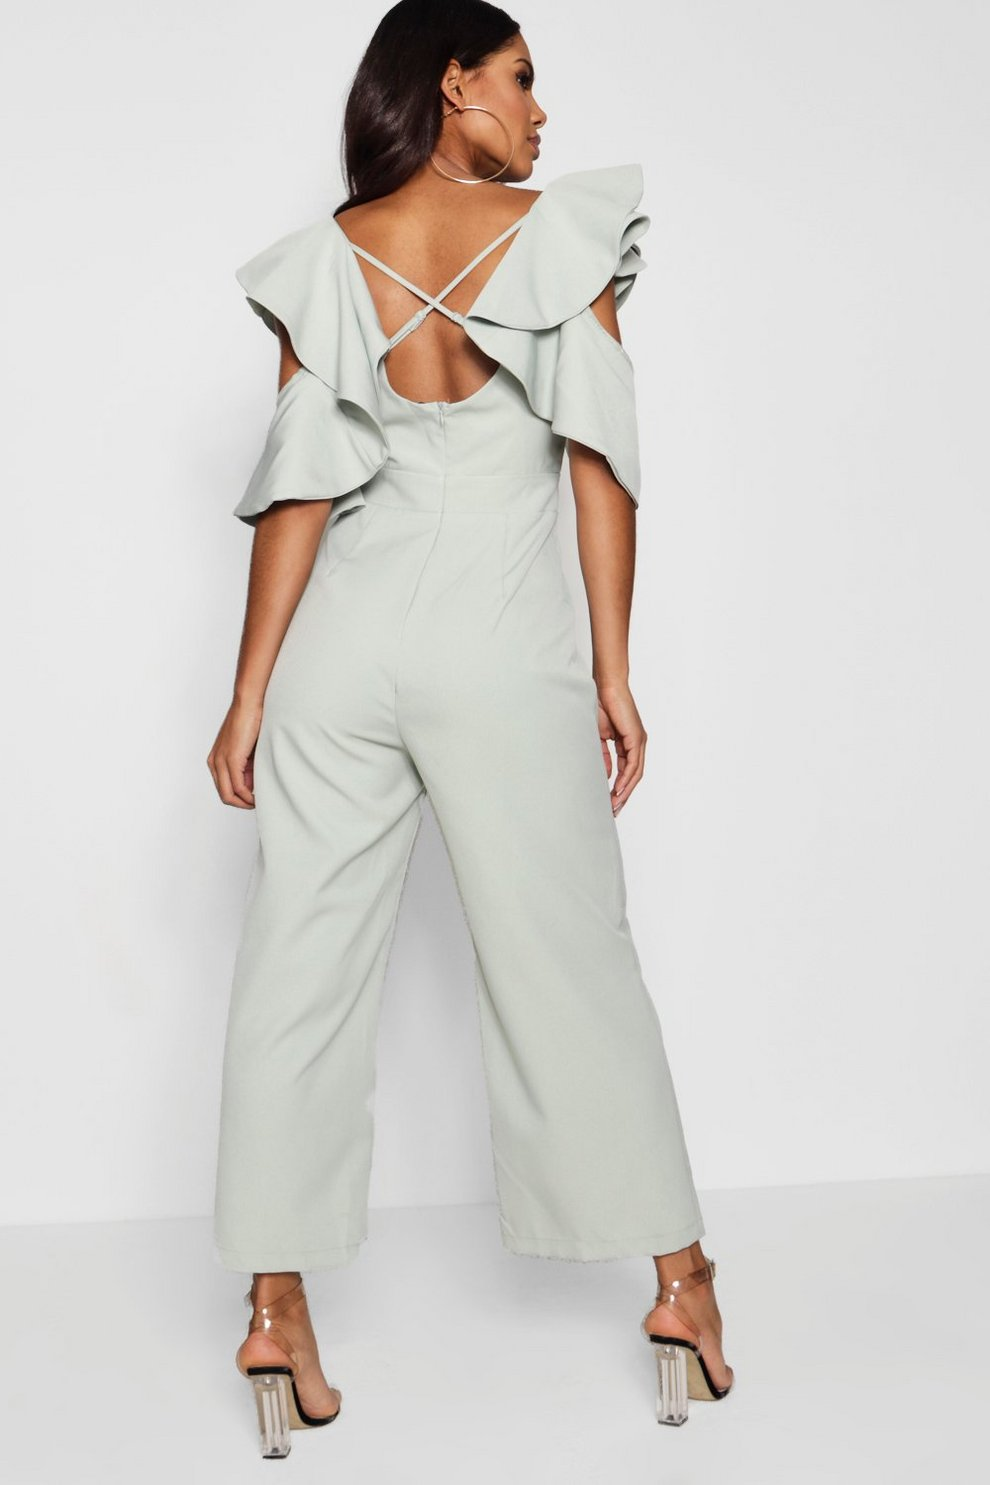 Boohoo Statement Ruffle Cross Back Jumpsuit Cheap Pick A Best Recommend wTwI5SVnOA